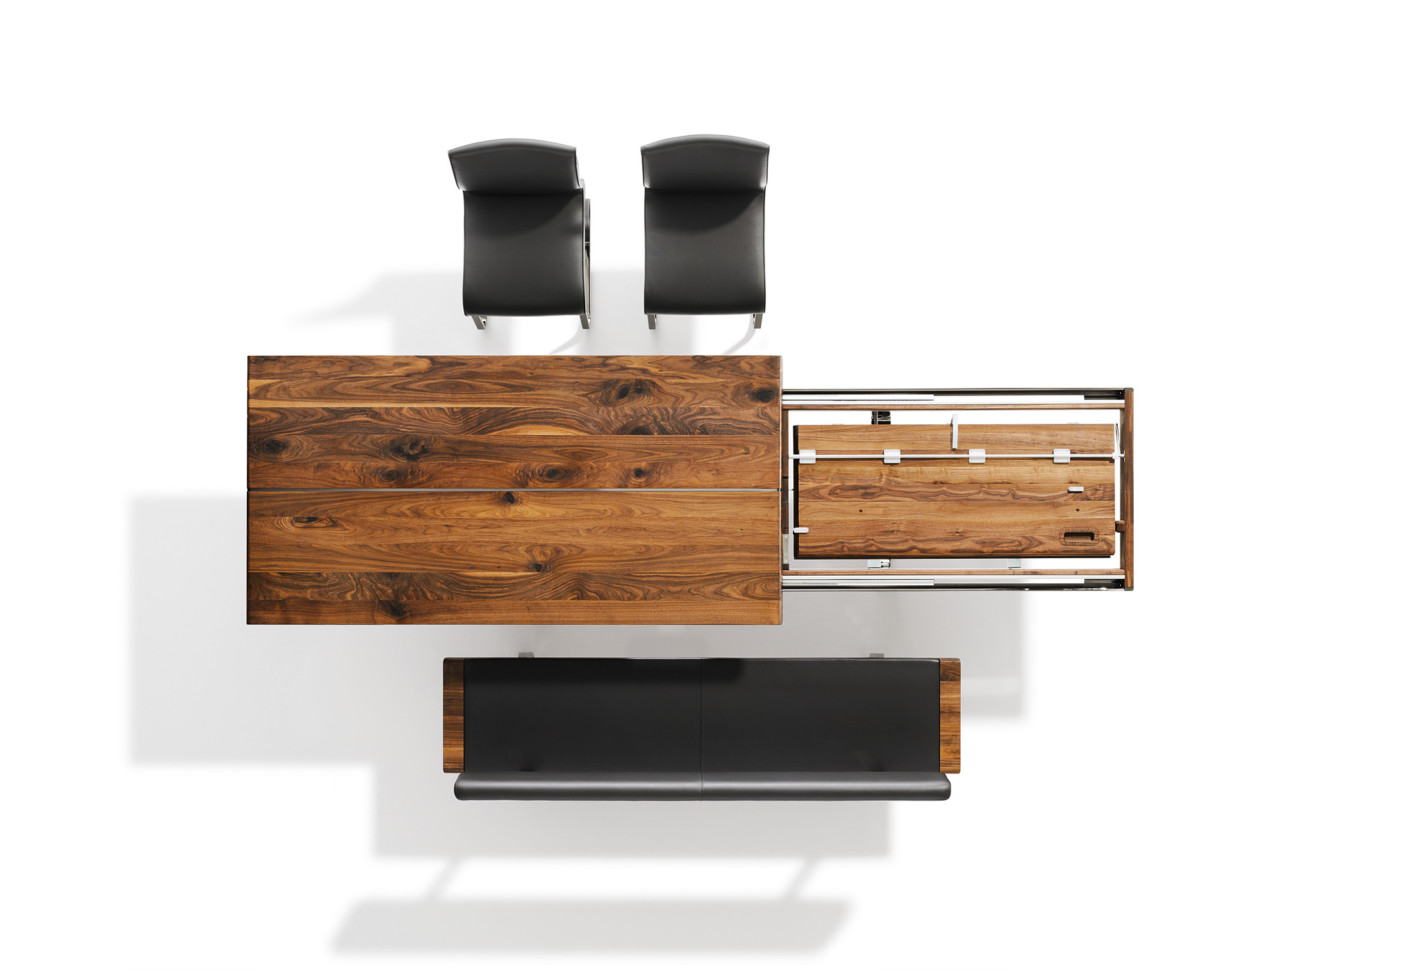 nox ausziehtisch von team 7 stylepark. Black Bedroom Furniture Sets. Home Design Ideas